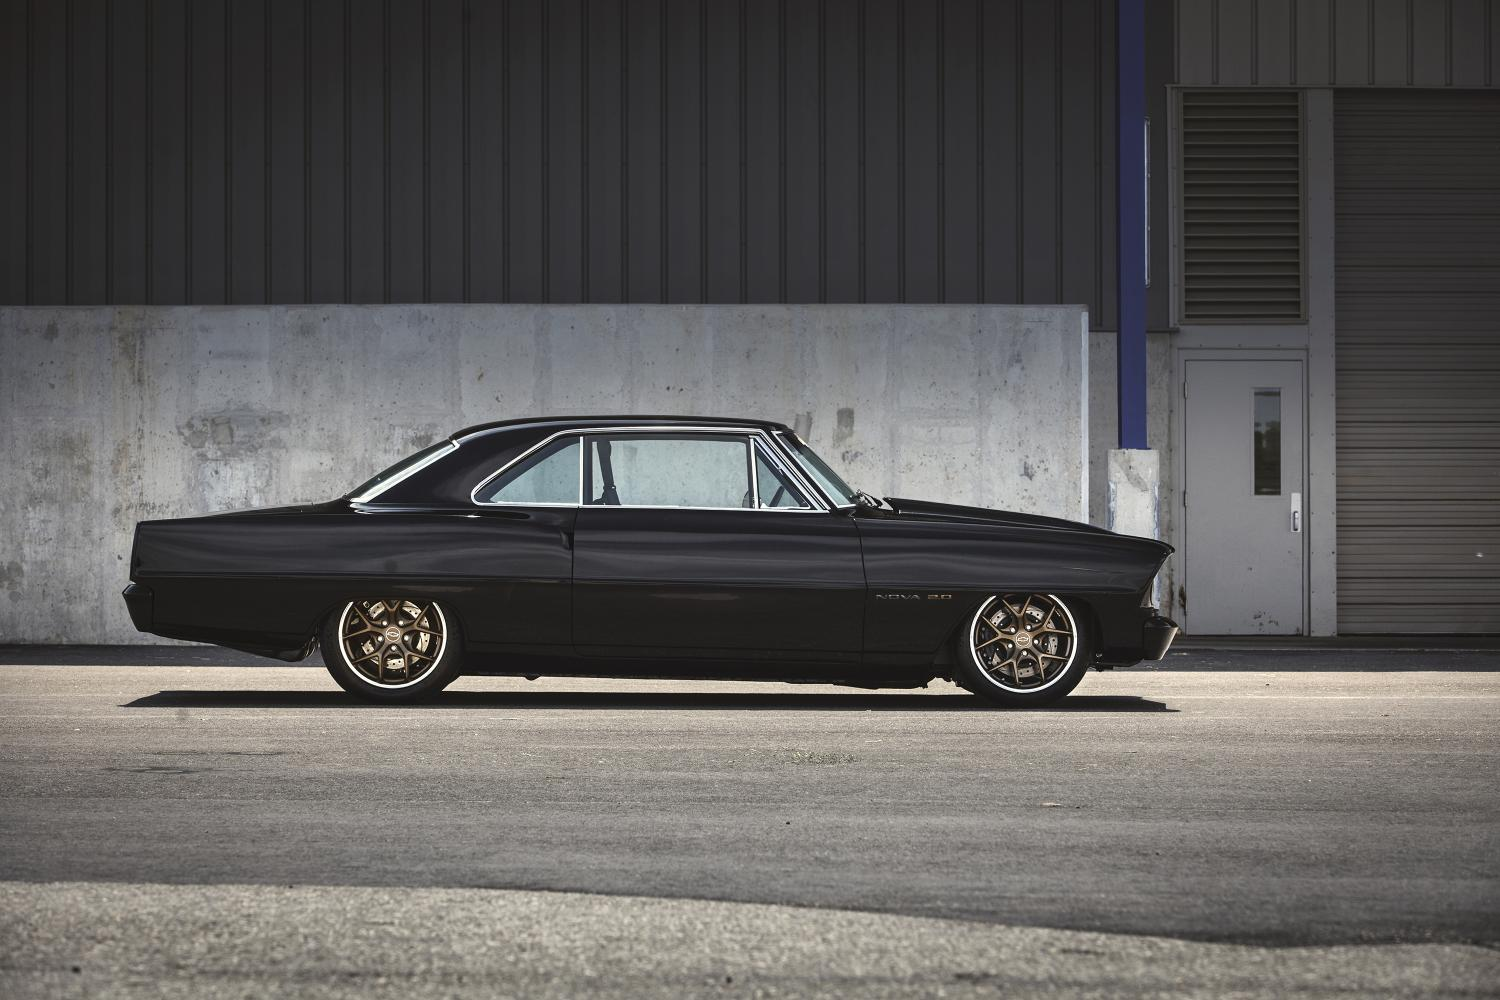 Chevy Nova With L Turbo Four Ltg Crate Engine Debuts At Sema No Thank You